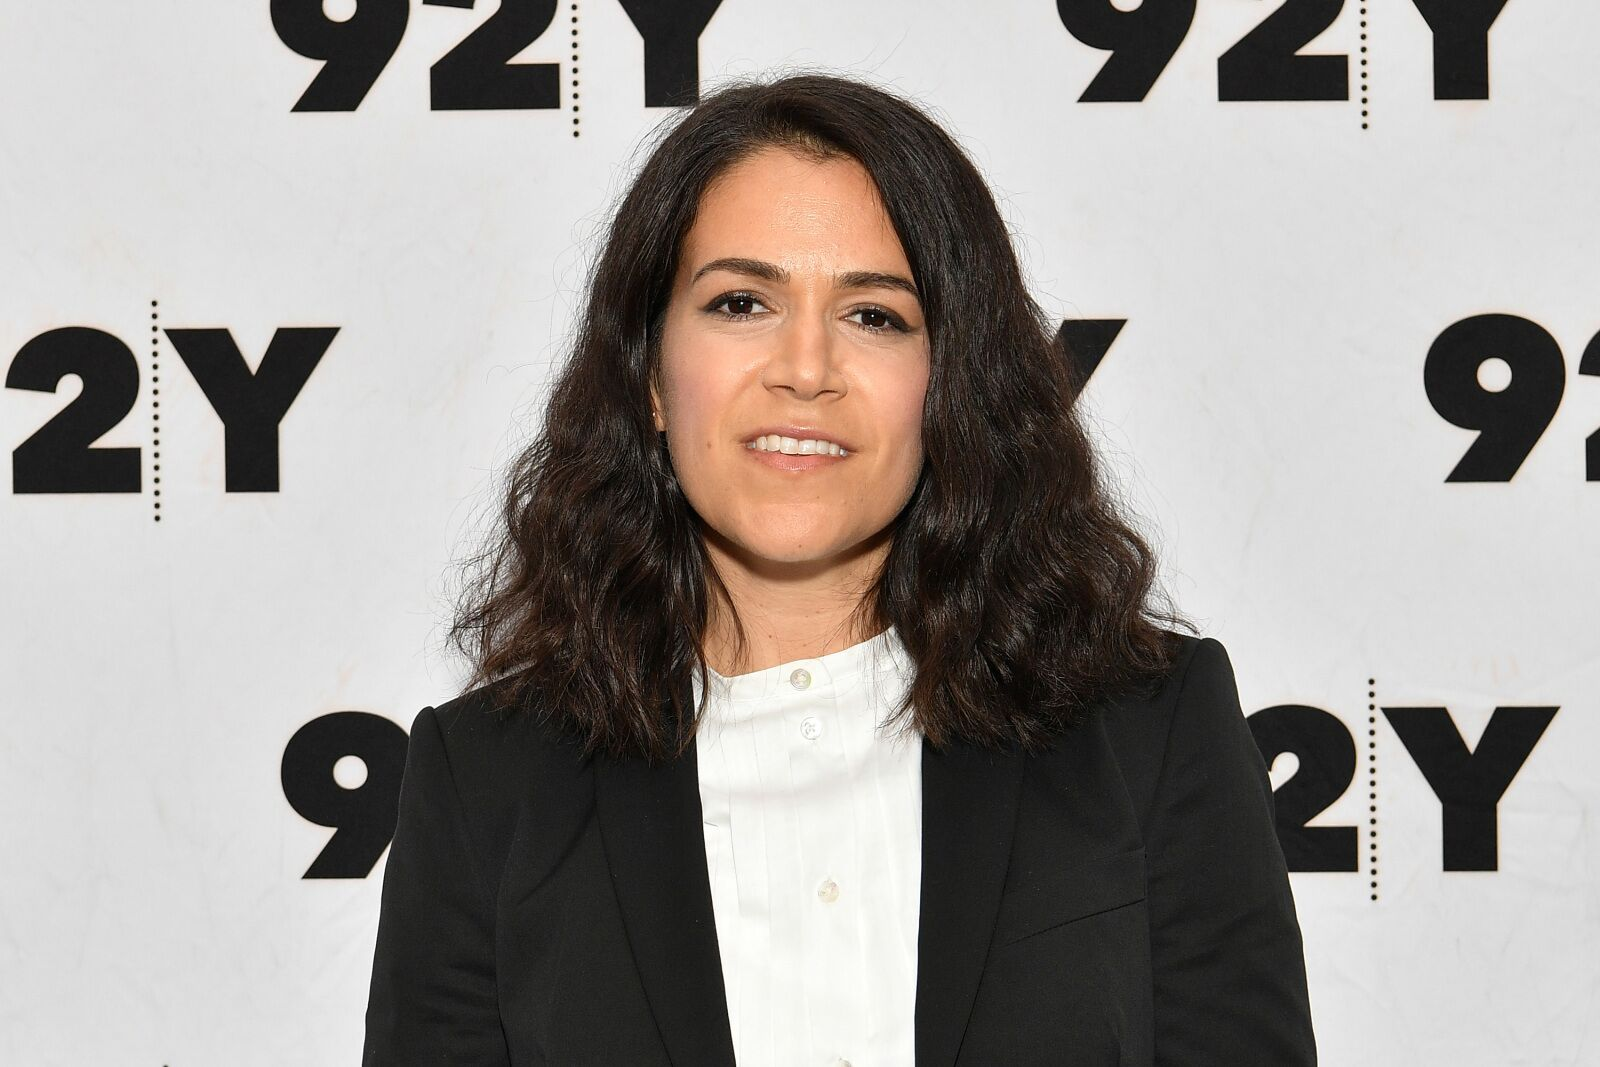 Abbi Jacobson and D'Arcy Carden to star in Amazon's A League of Their Own remake